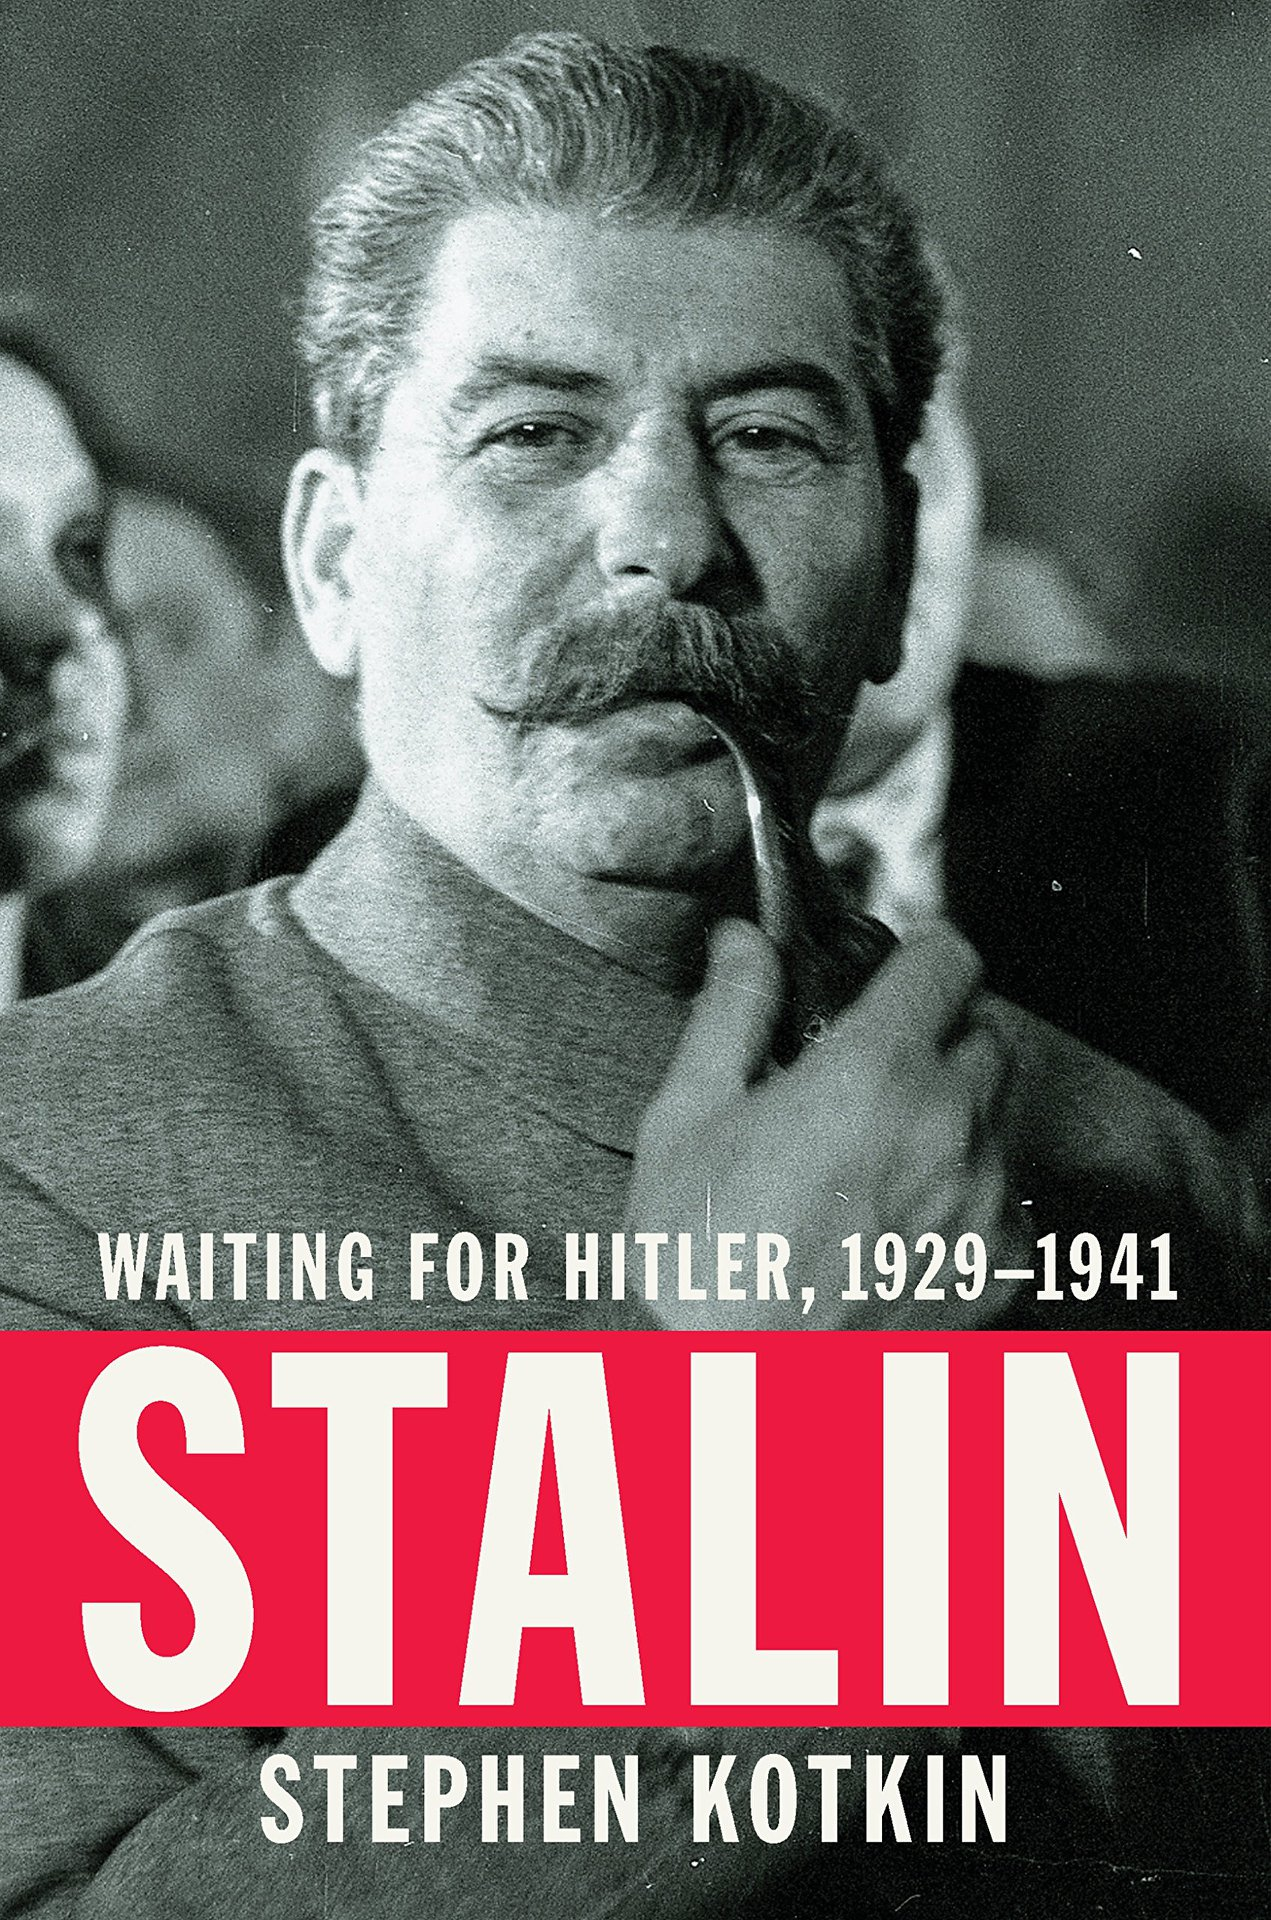 """Stephen Kotkin, the John P. Birkelund Professor in History and International Affairs at Princeton University and the director of Princeton Institute of International and Regional Studies (PIIRS), has won the seventeenth annual Council on Foreign Relations (CFR) Arthur Ross Book Award for """"Stalin: Waiting for Hitler, 1929–1941,"""" the second volume of a definitive biography of Joseph Stalin."""